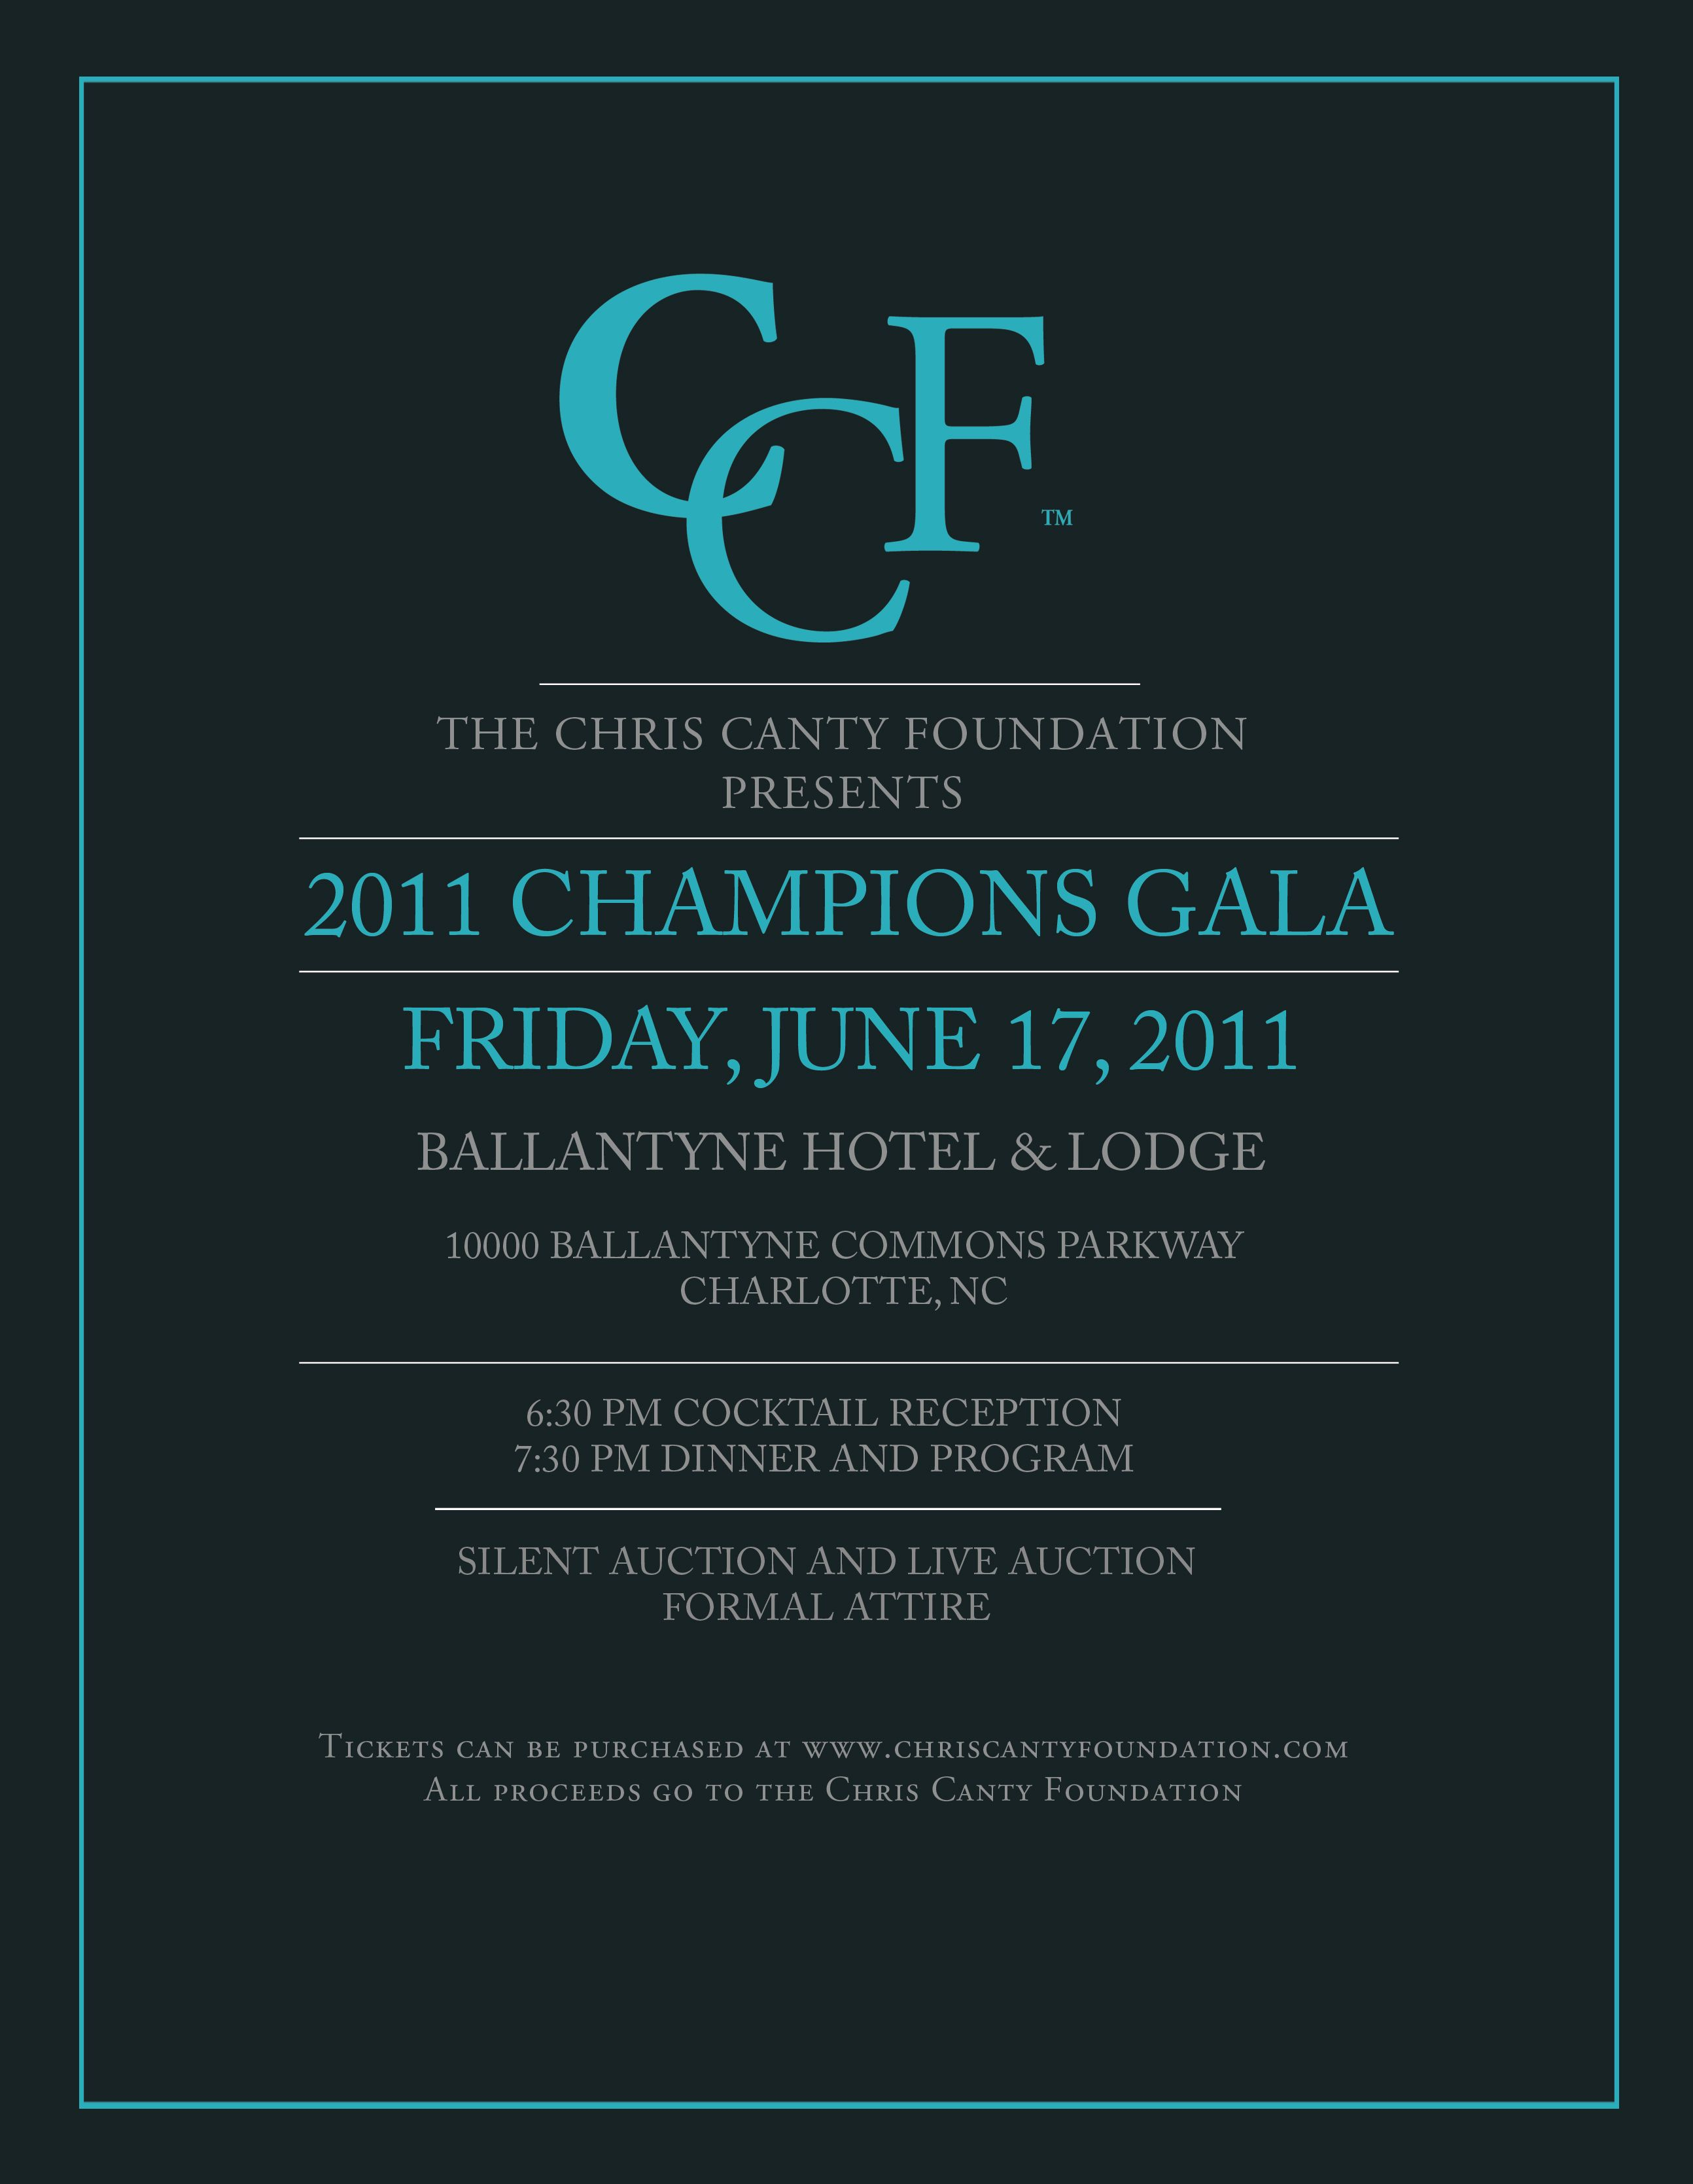 Gala Invitation FIBA 35th Anniversary Gala Pinterest – Gala Invitation Template